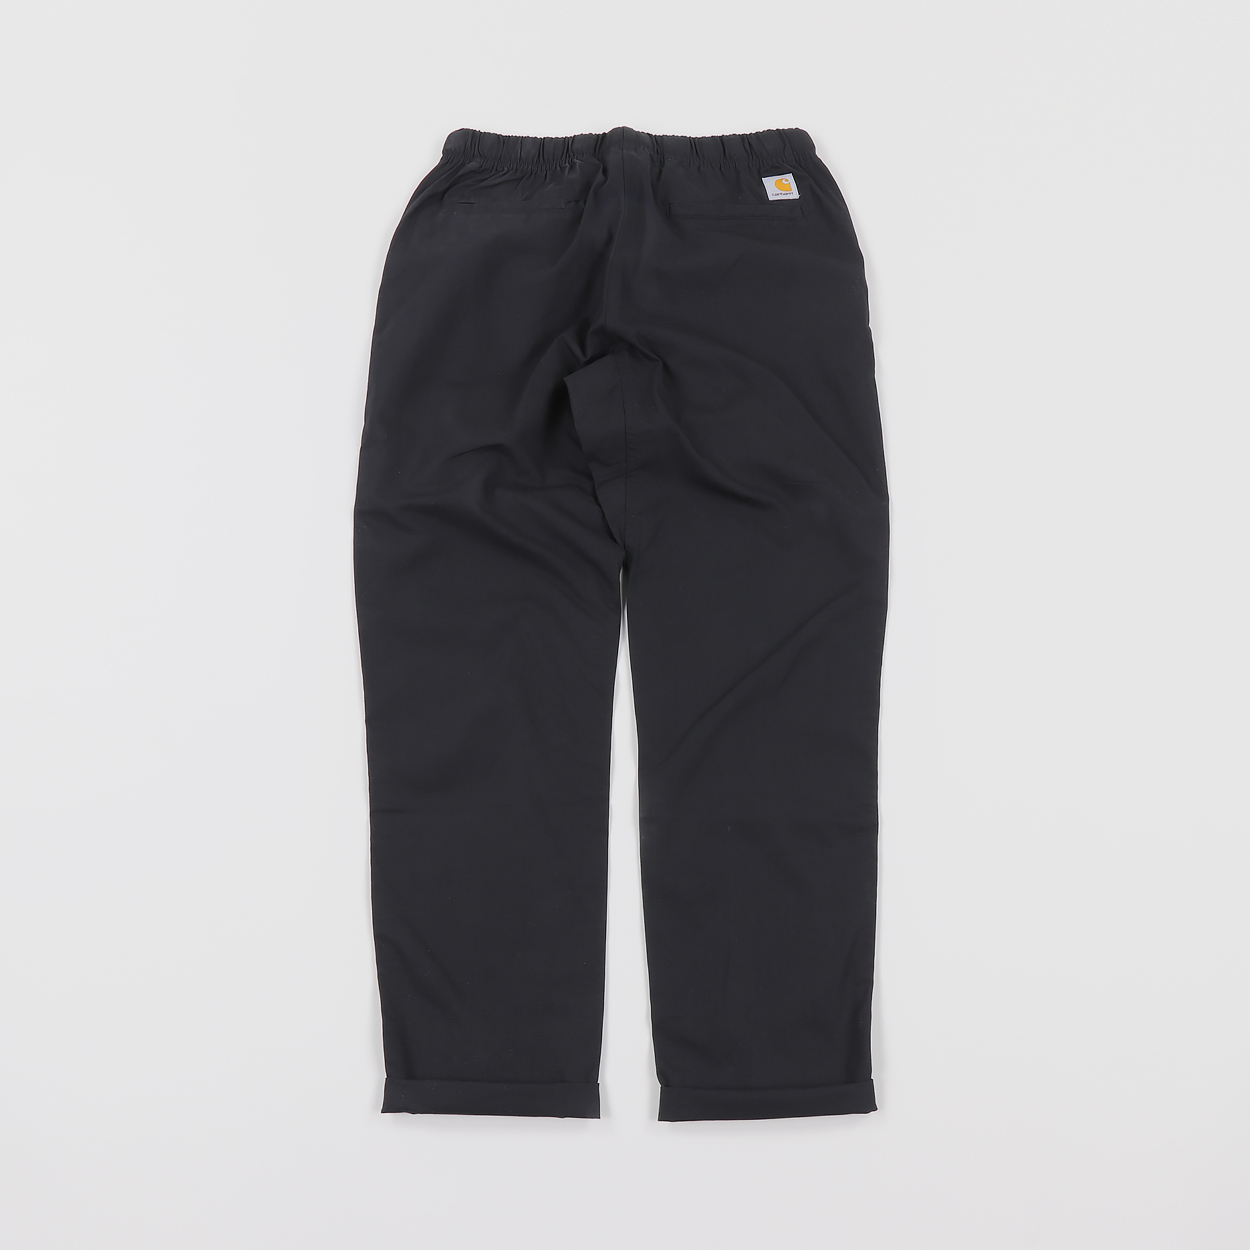 f1933f81e2 Carhartt WIP Workwear Colton Clip Cotton Tapered Pants Black £56.00